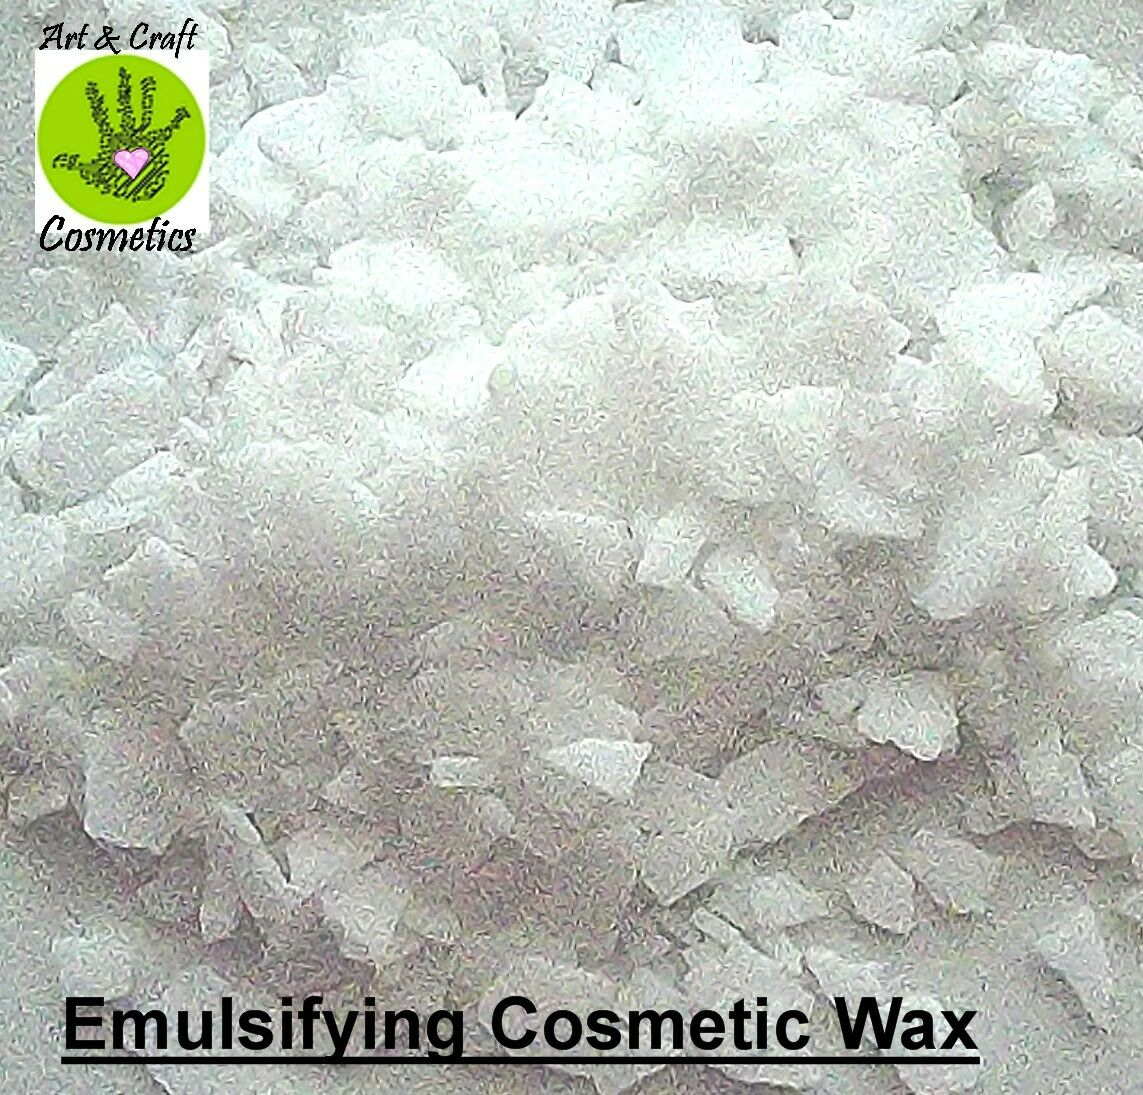 Emulsifying Vegetal Cosmetic Pure Wax Easy Natural Making Homemade Cream Lotions